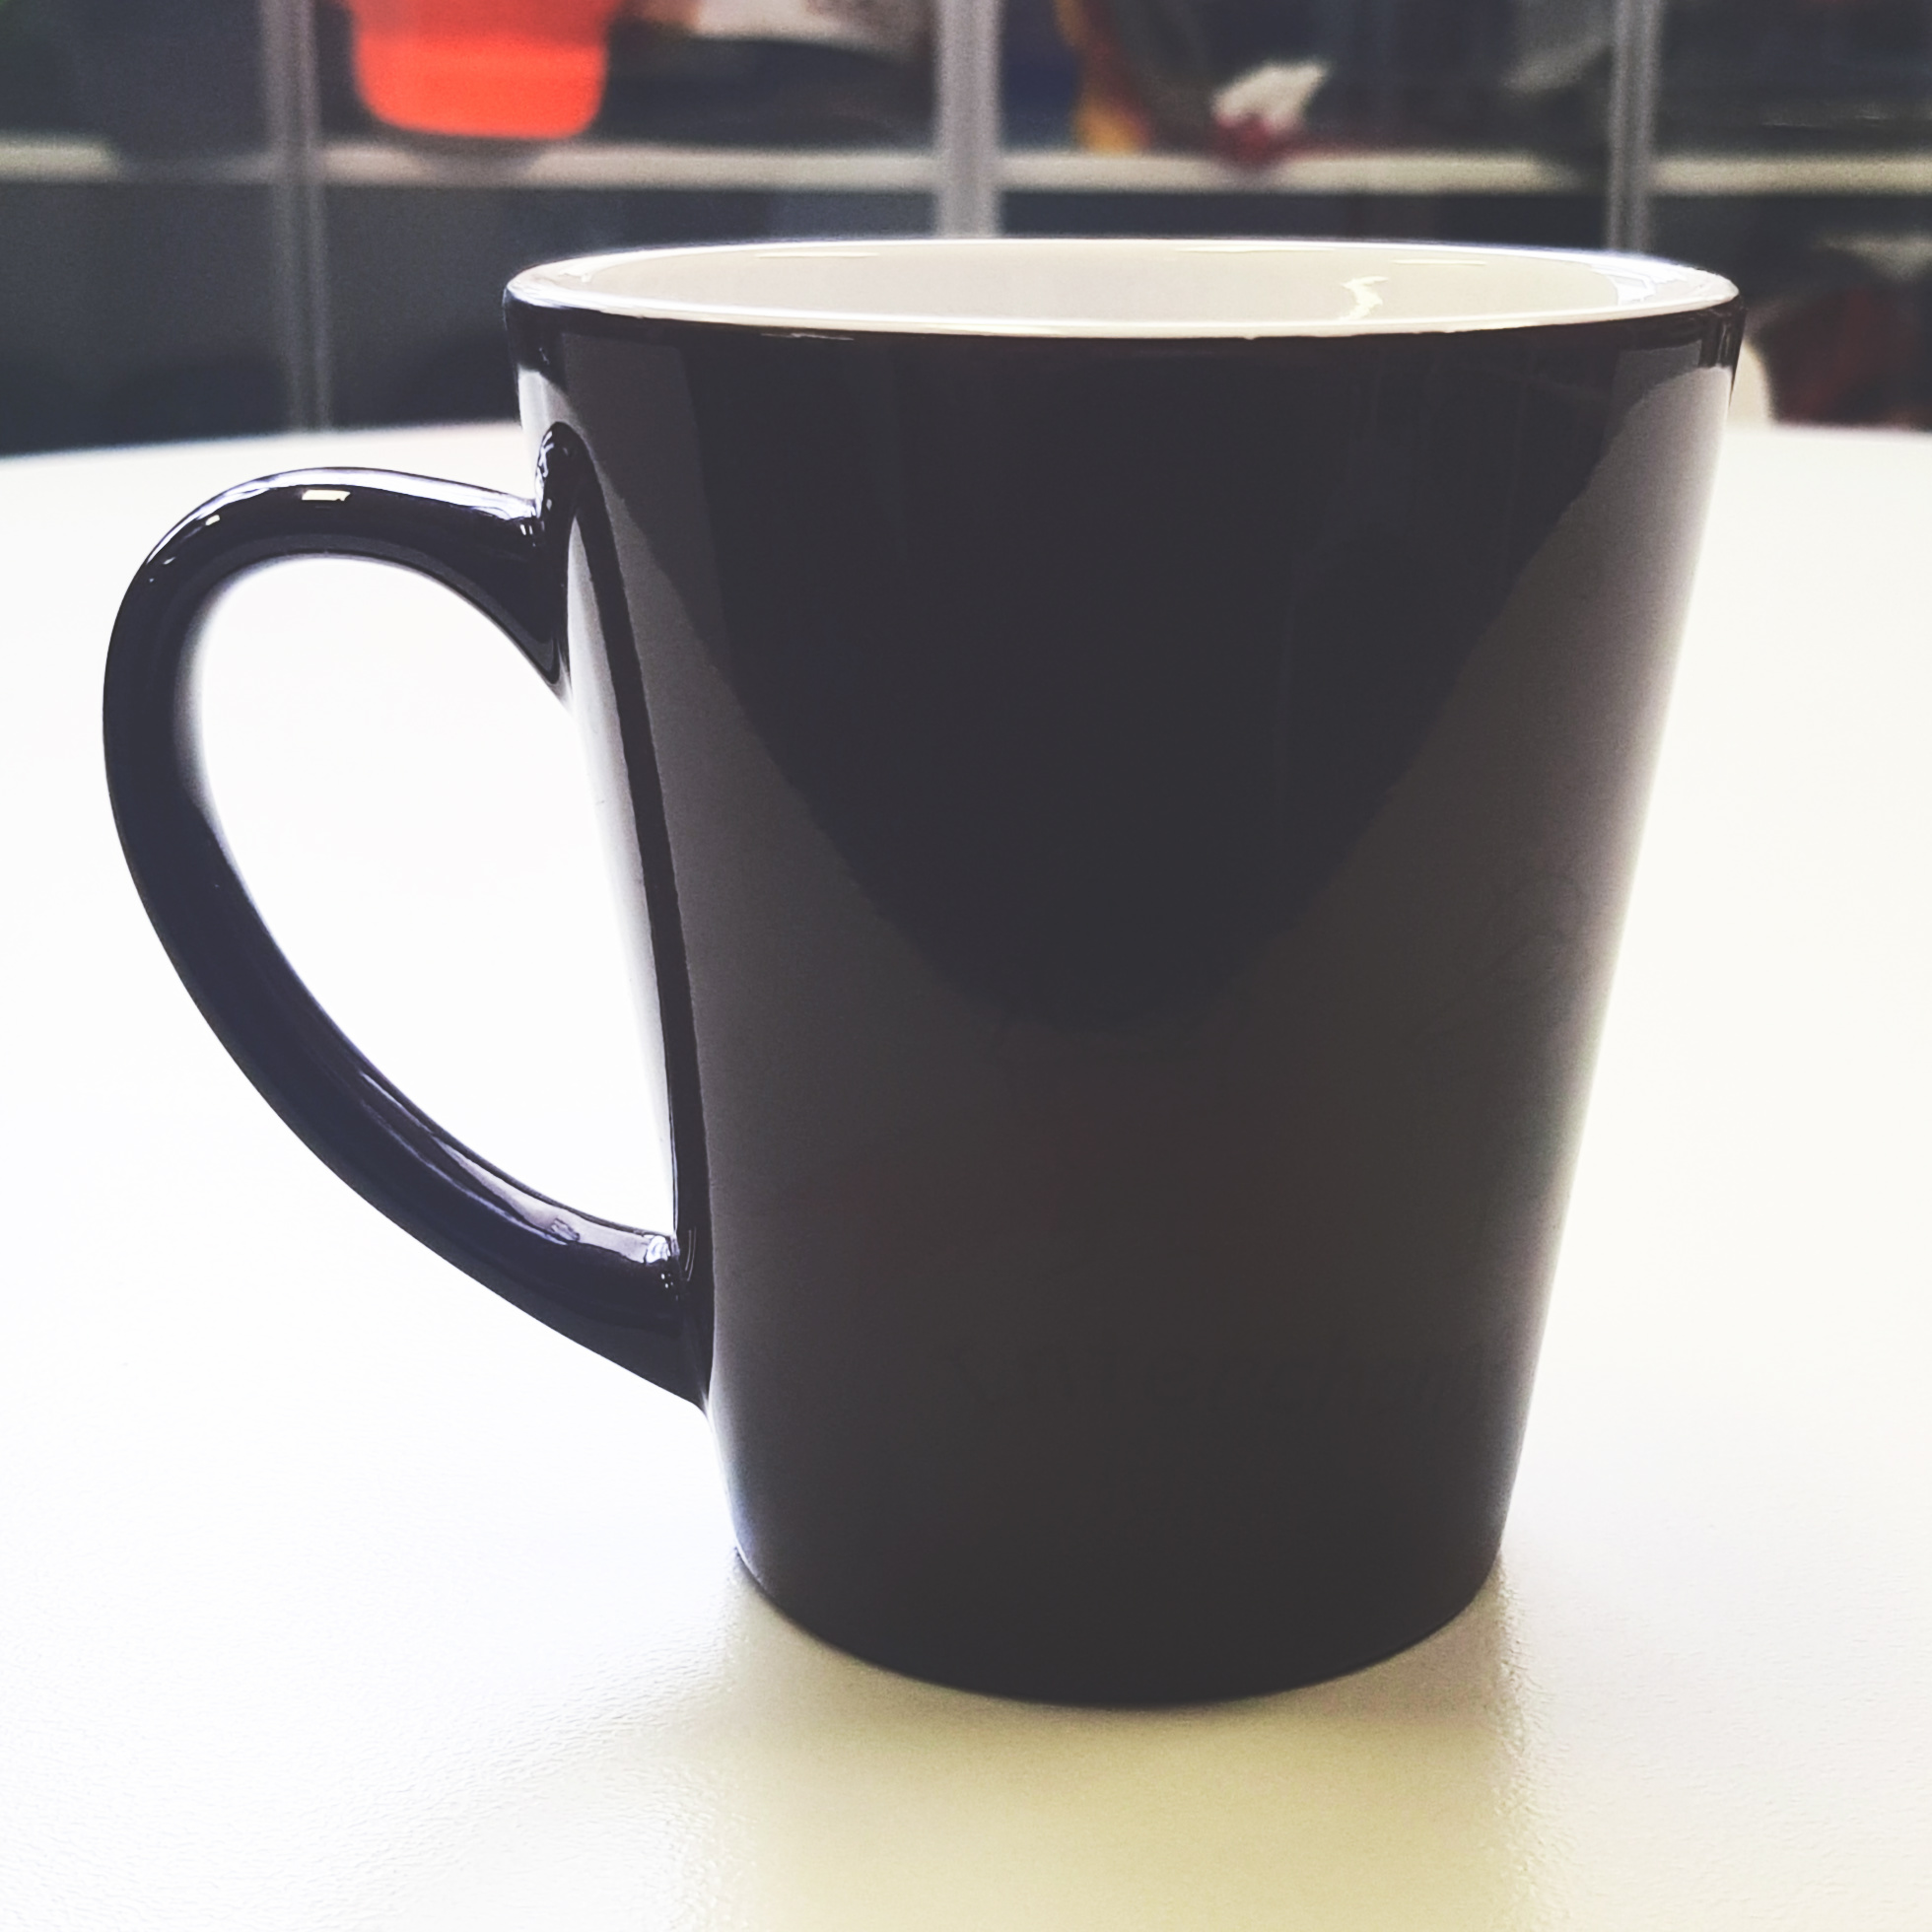 Promotional Change Mug Black